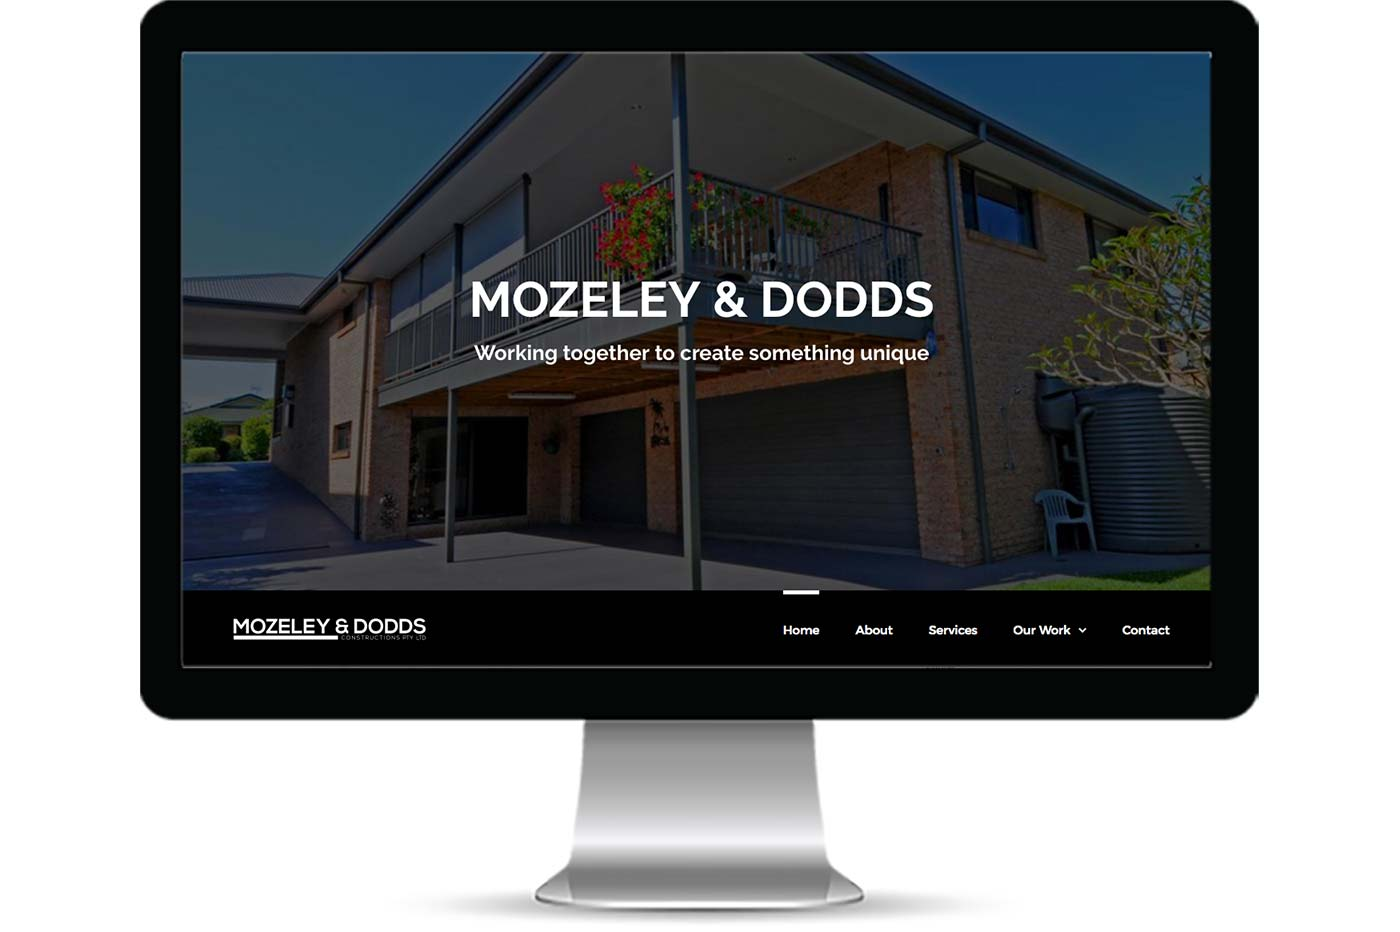 Advantage iT Solutions Web Portfolio - Mozeley & Dodds